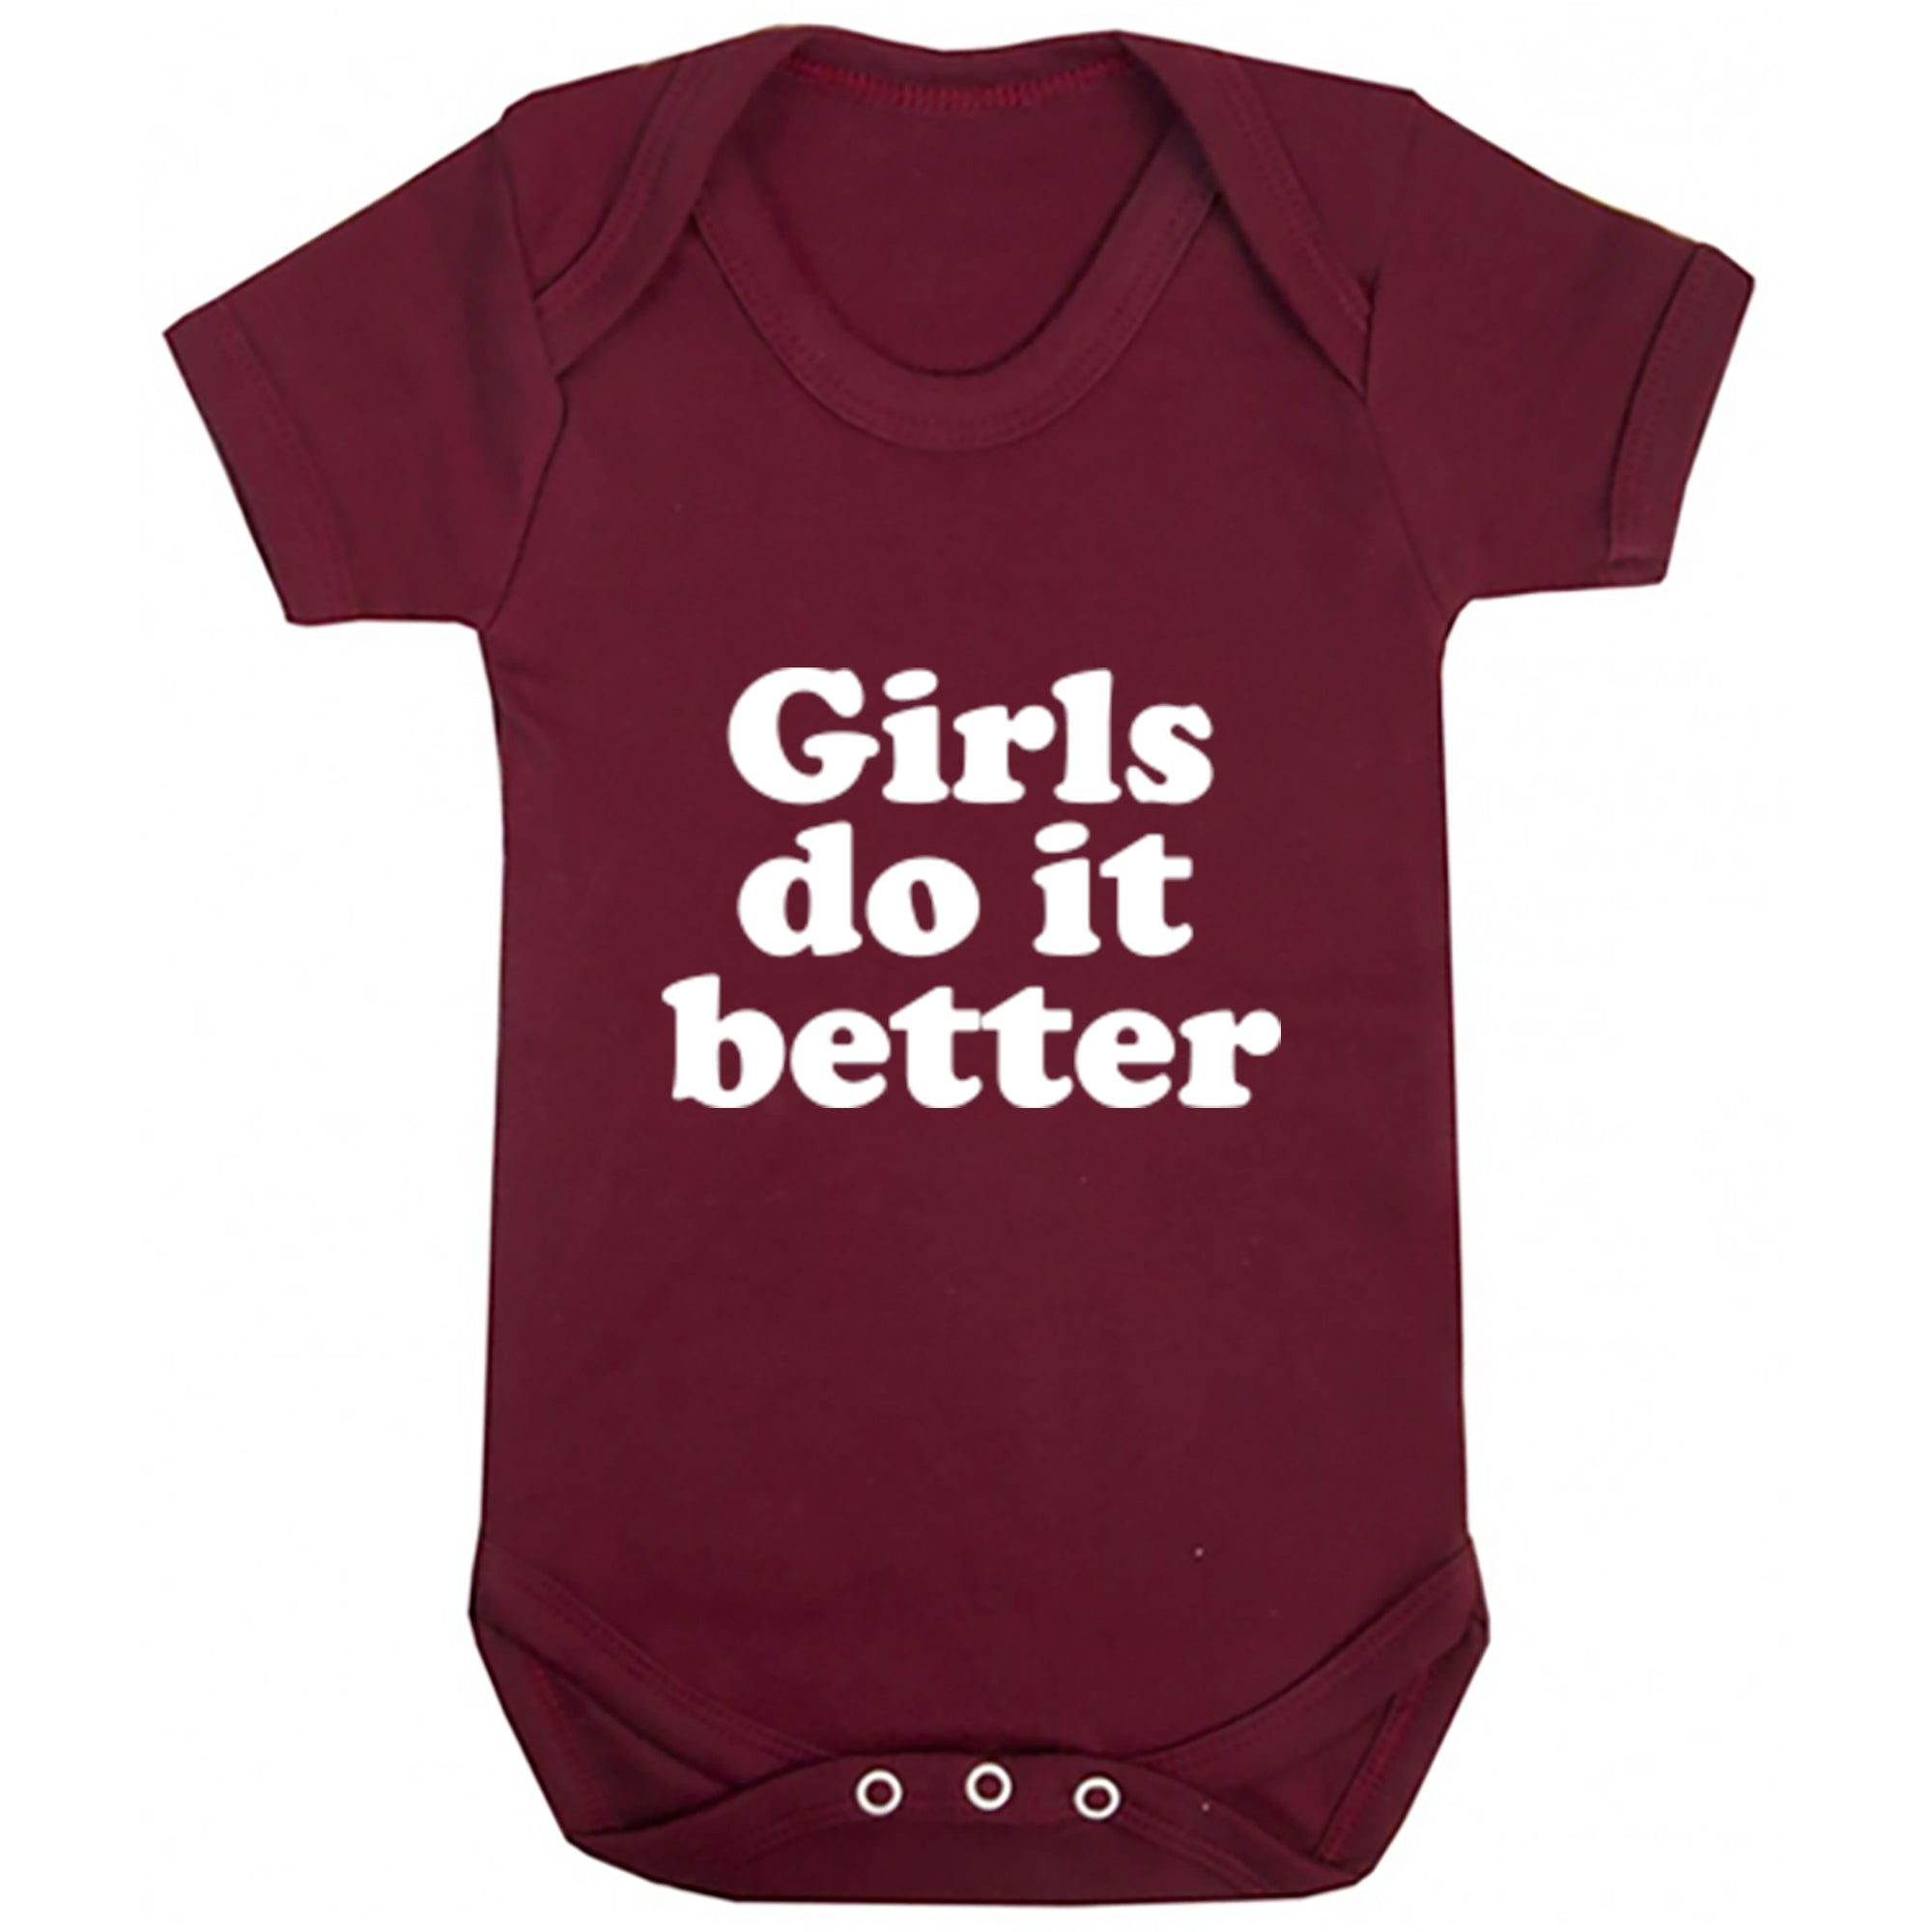 Girls Do It Better Baby Vest S0789 - Illustrated Identity Ltd.